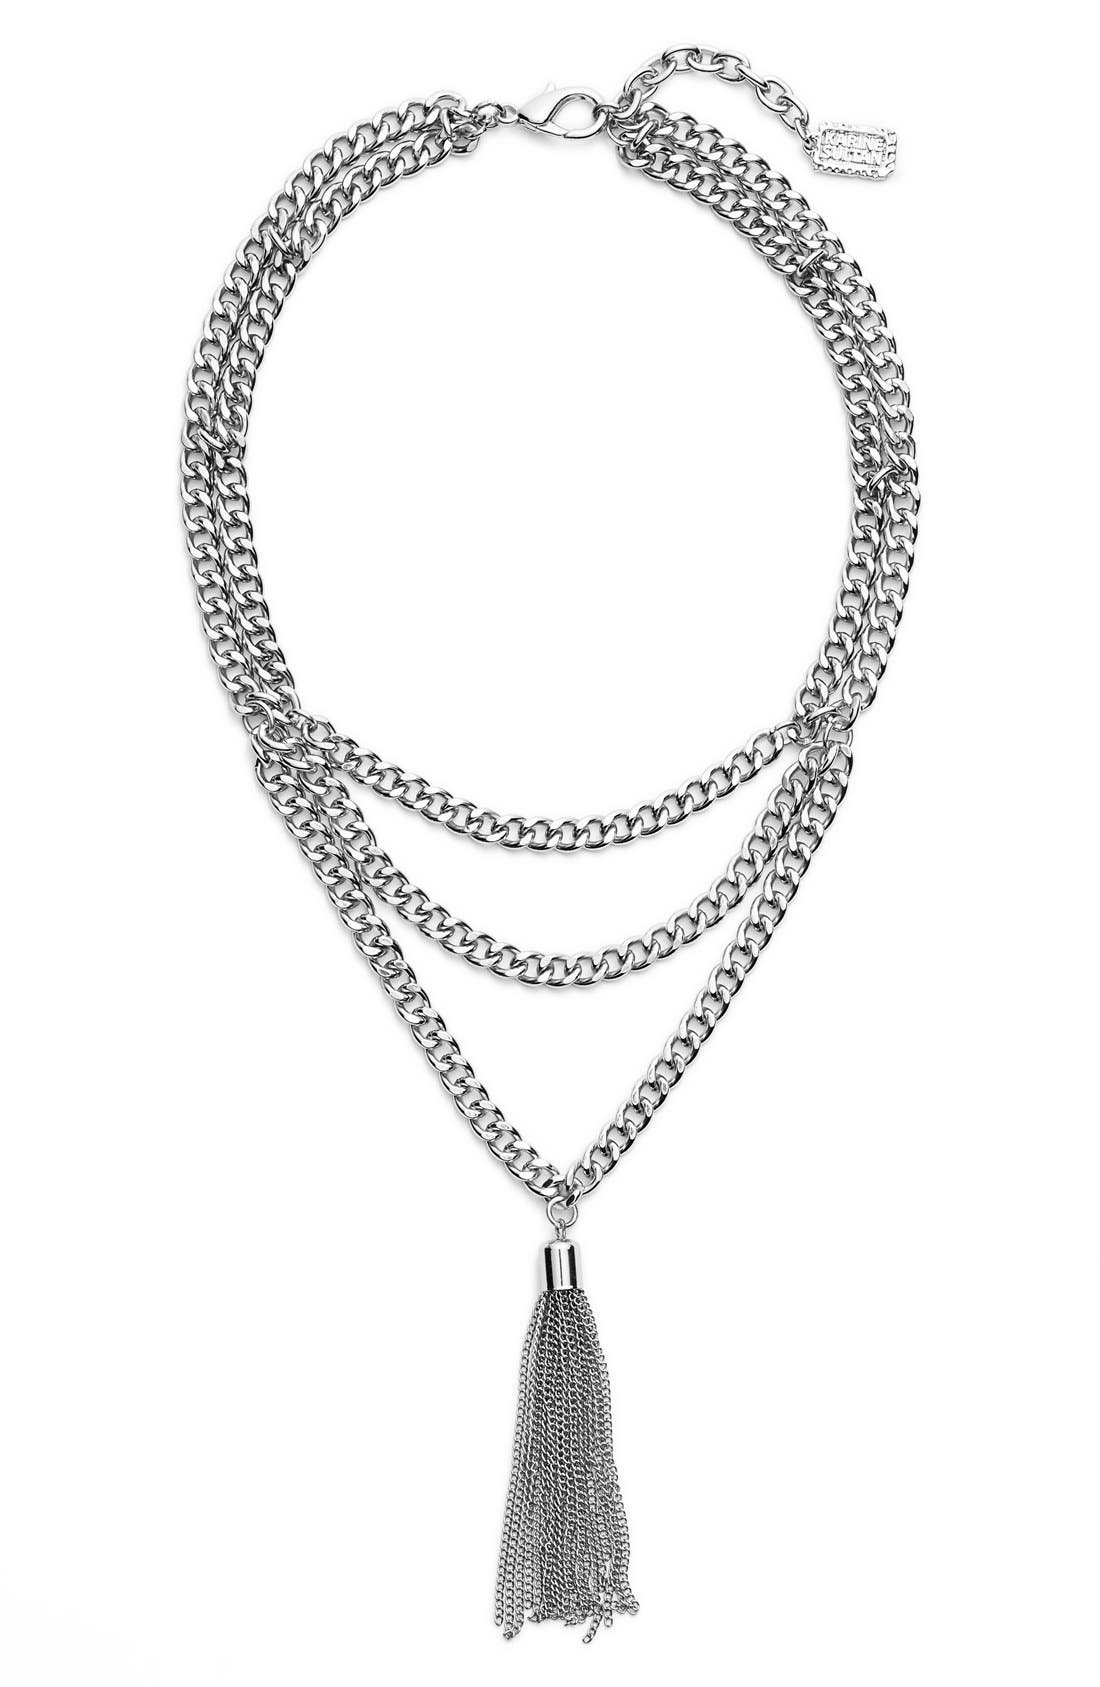 KARINE SULTAN Layered Y-Necklace, Main, color, SILVER